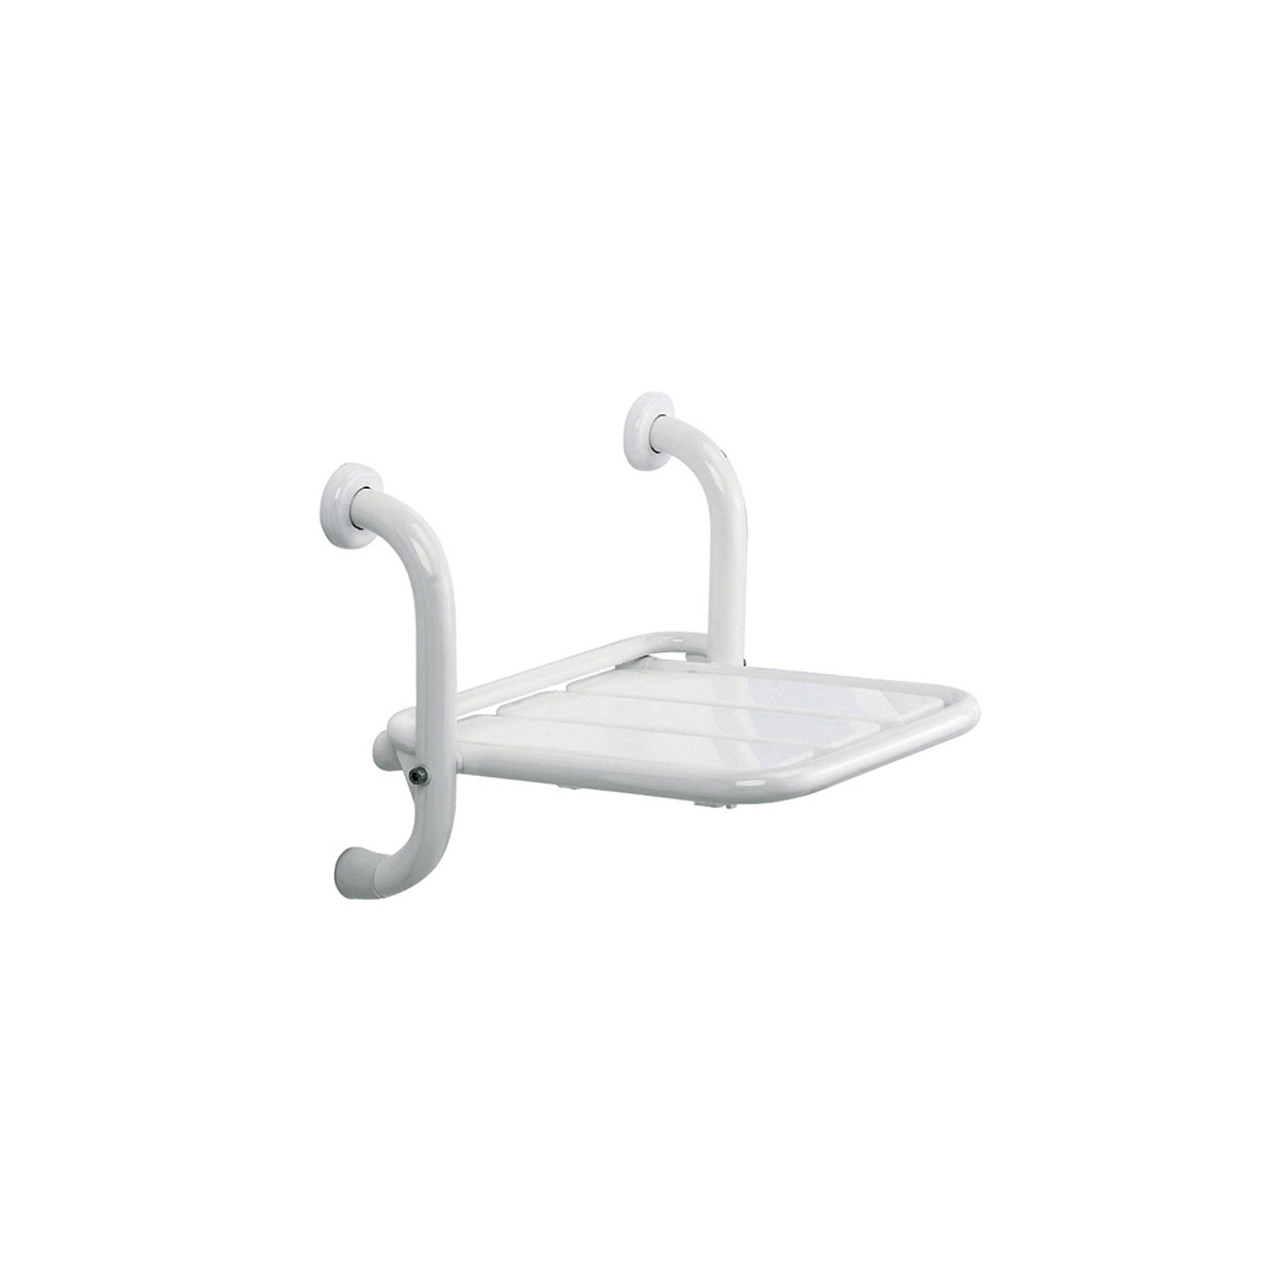 ADA Comliant White Stainless Steel Folding Shower Seat, Wall Mount Shower Chair 15.6 x 13.7 Inches Polyurethane Coated